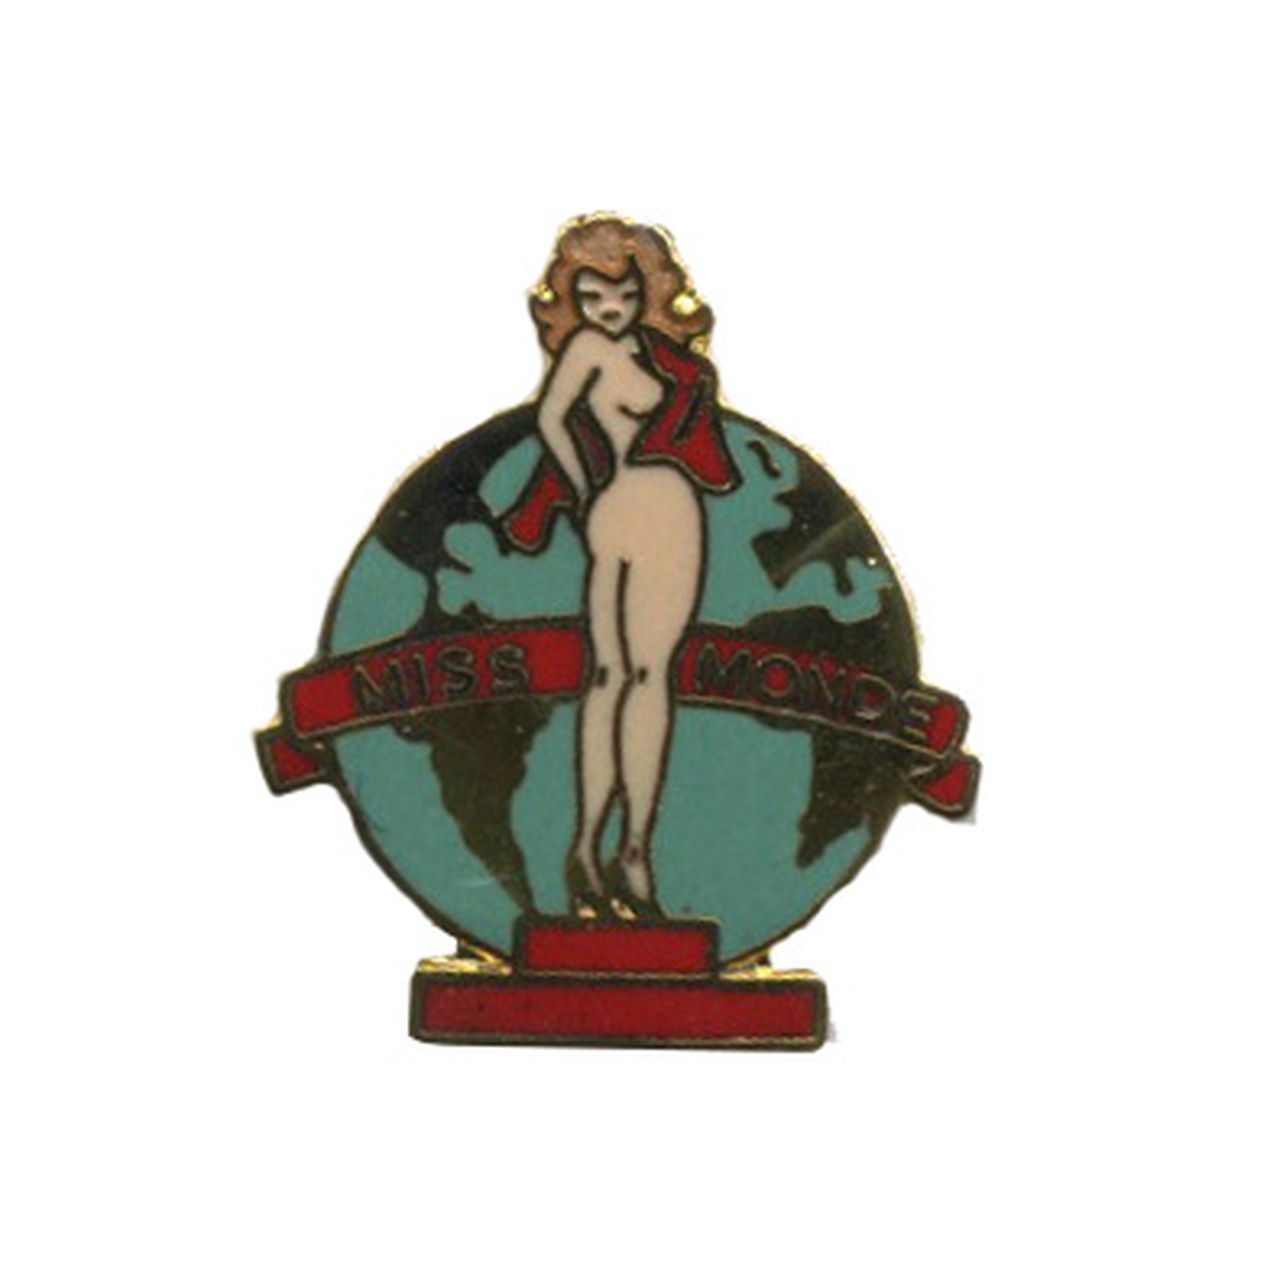 Pin-up Miss monde (Petit modèle)